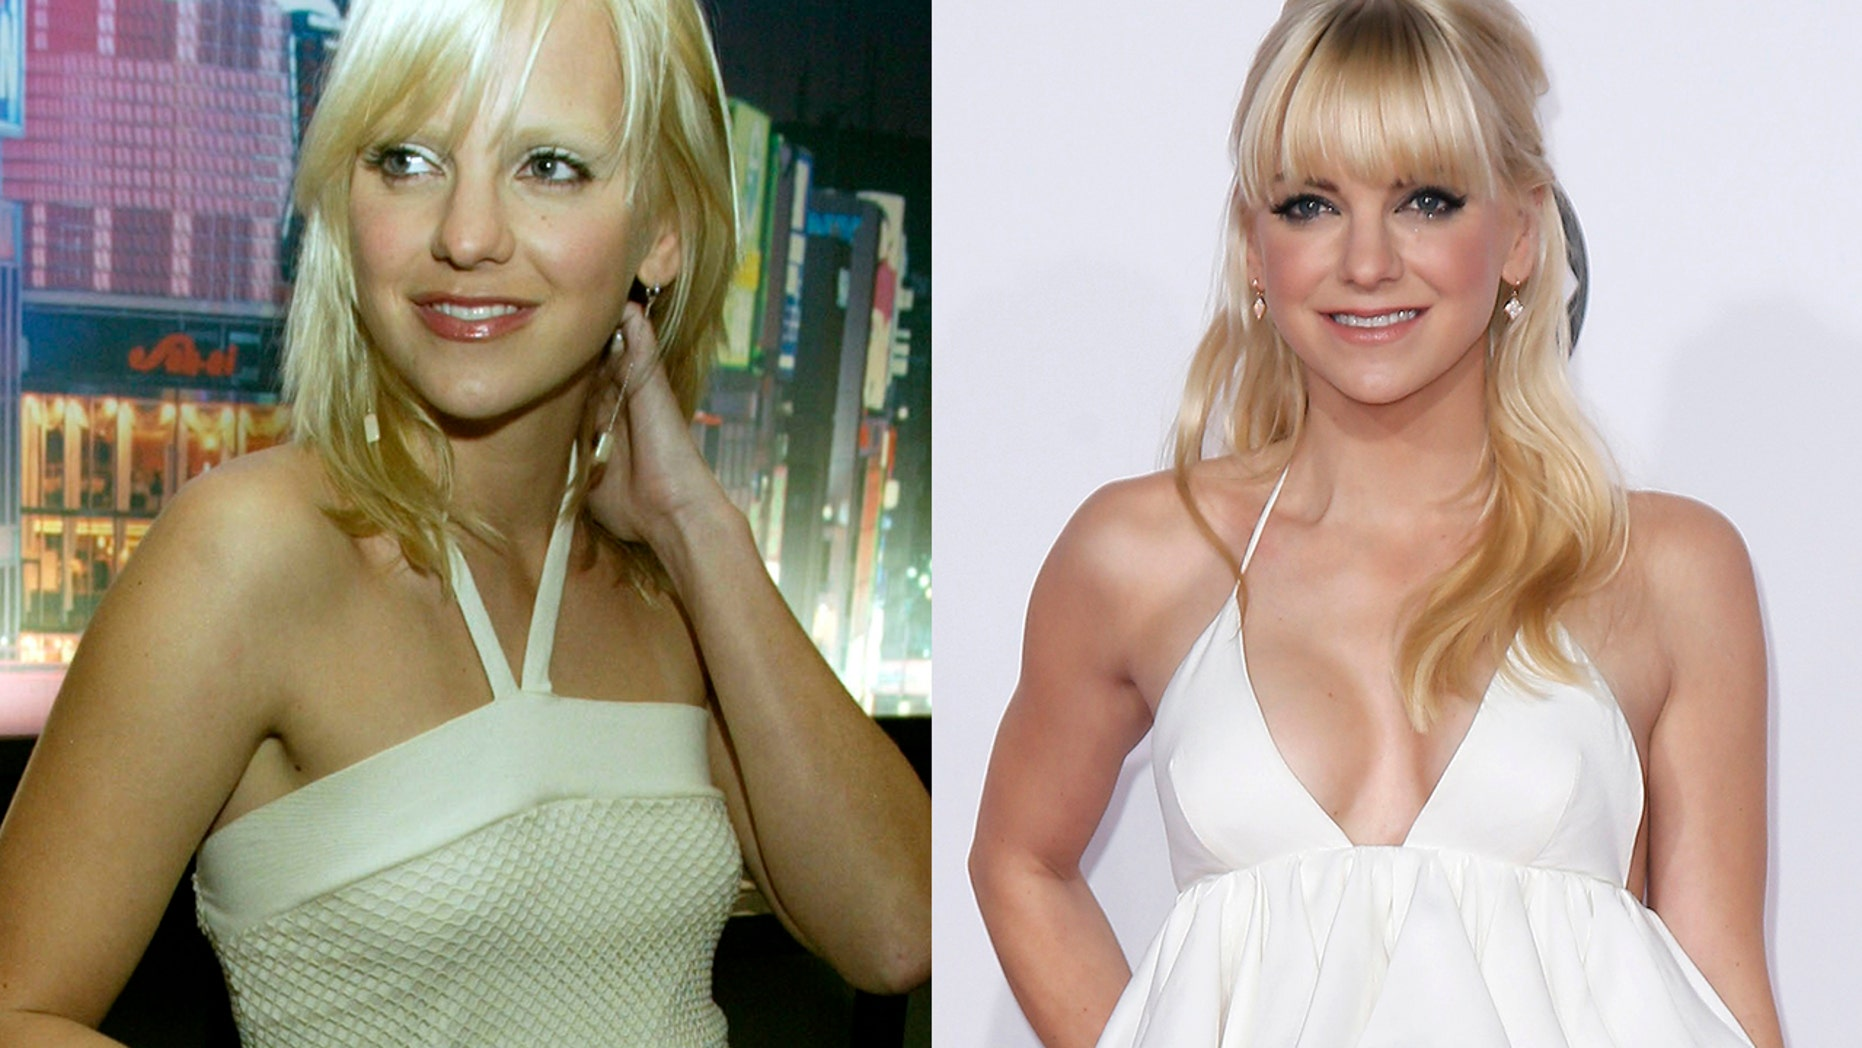 Anna Faris in 2004 (left) before she had breast implants and after in 2015 (right).